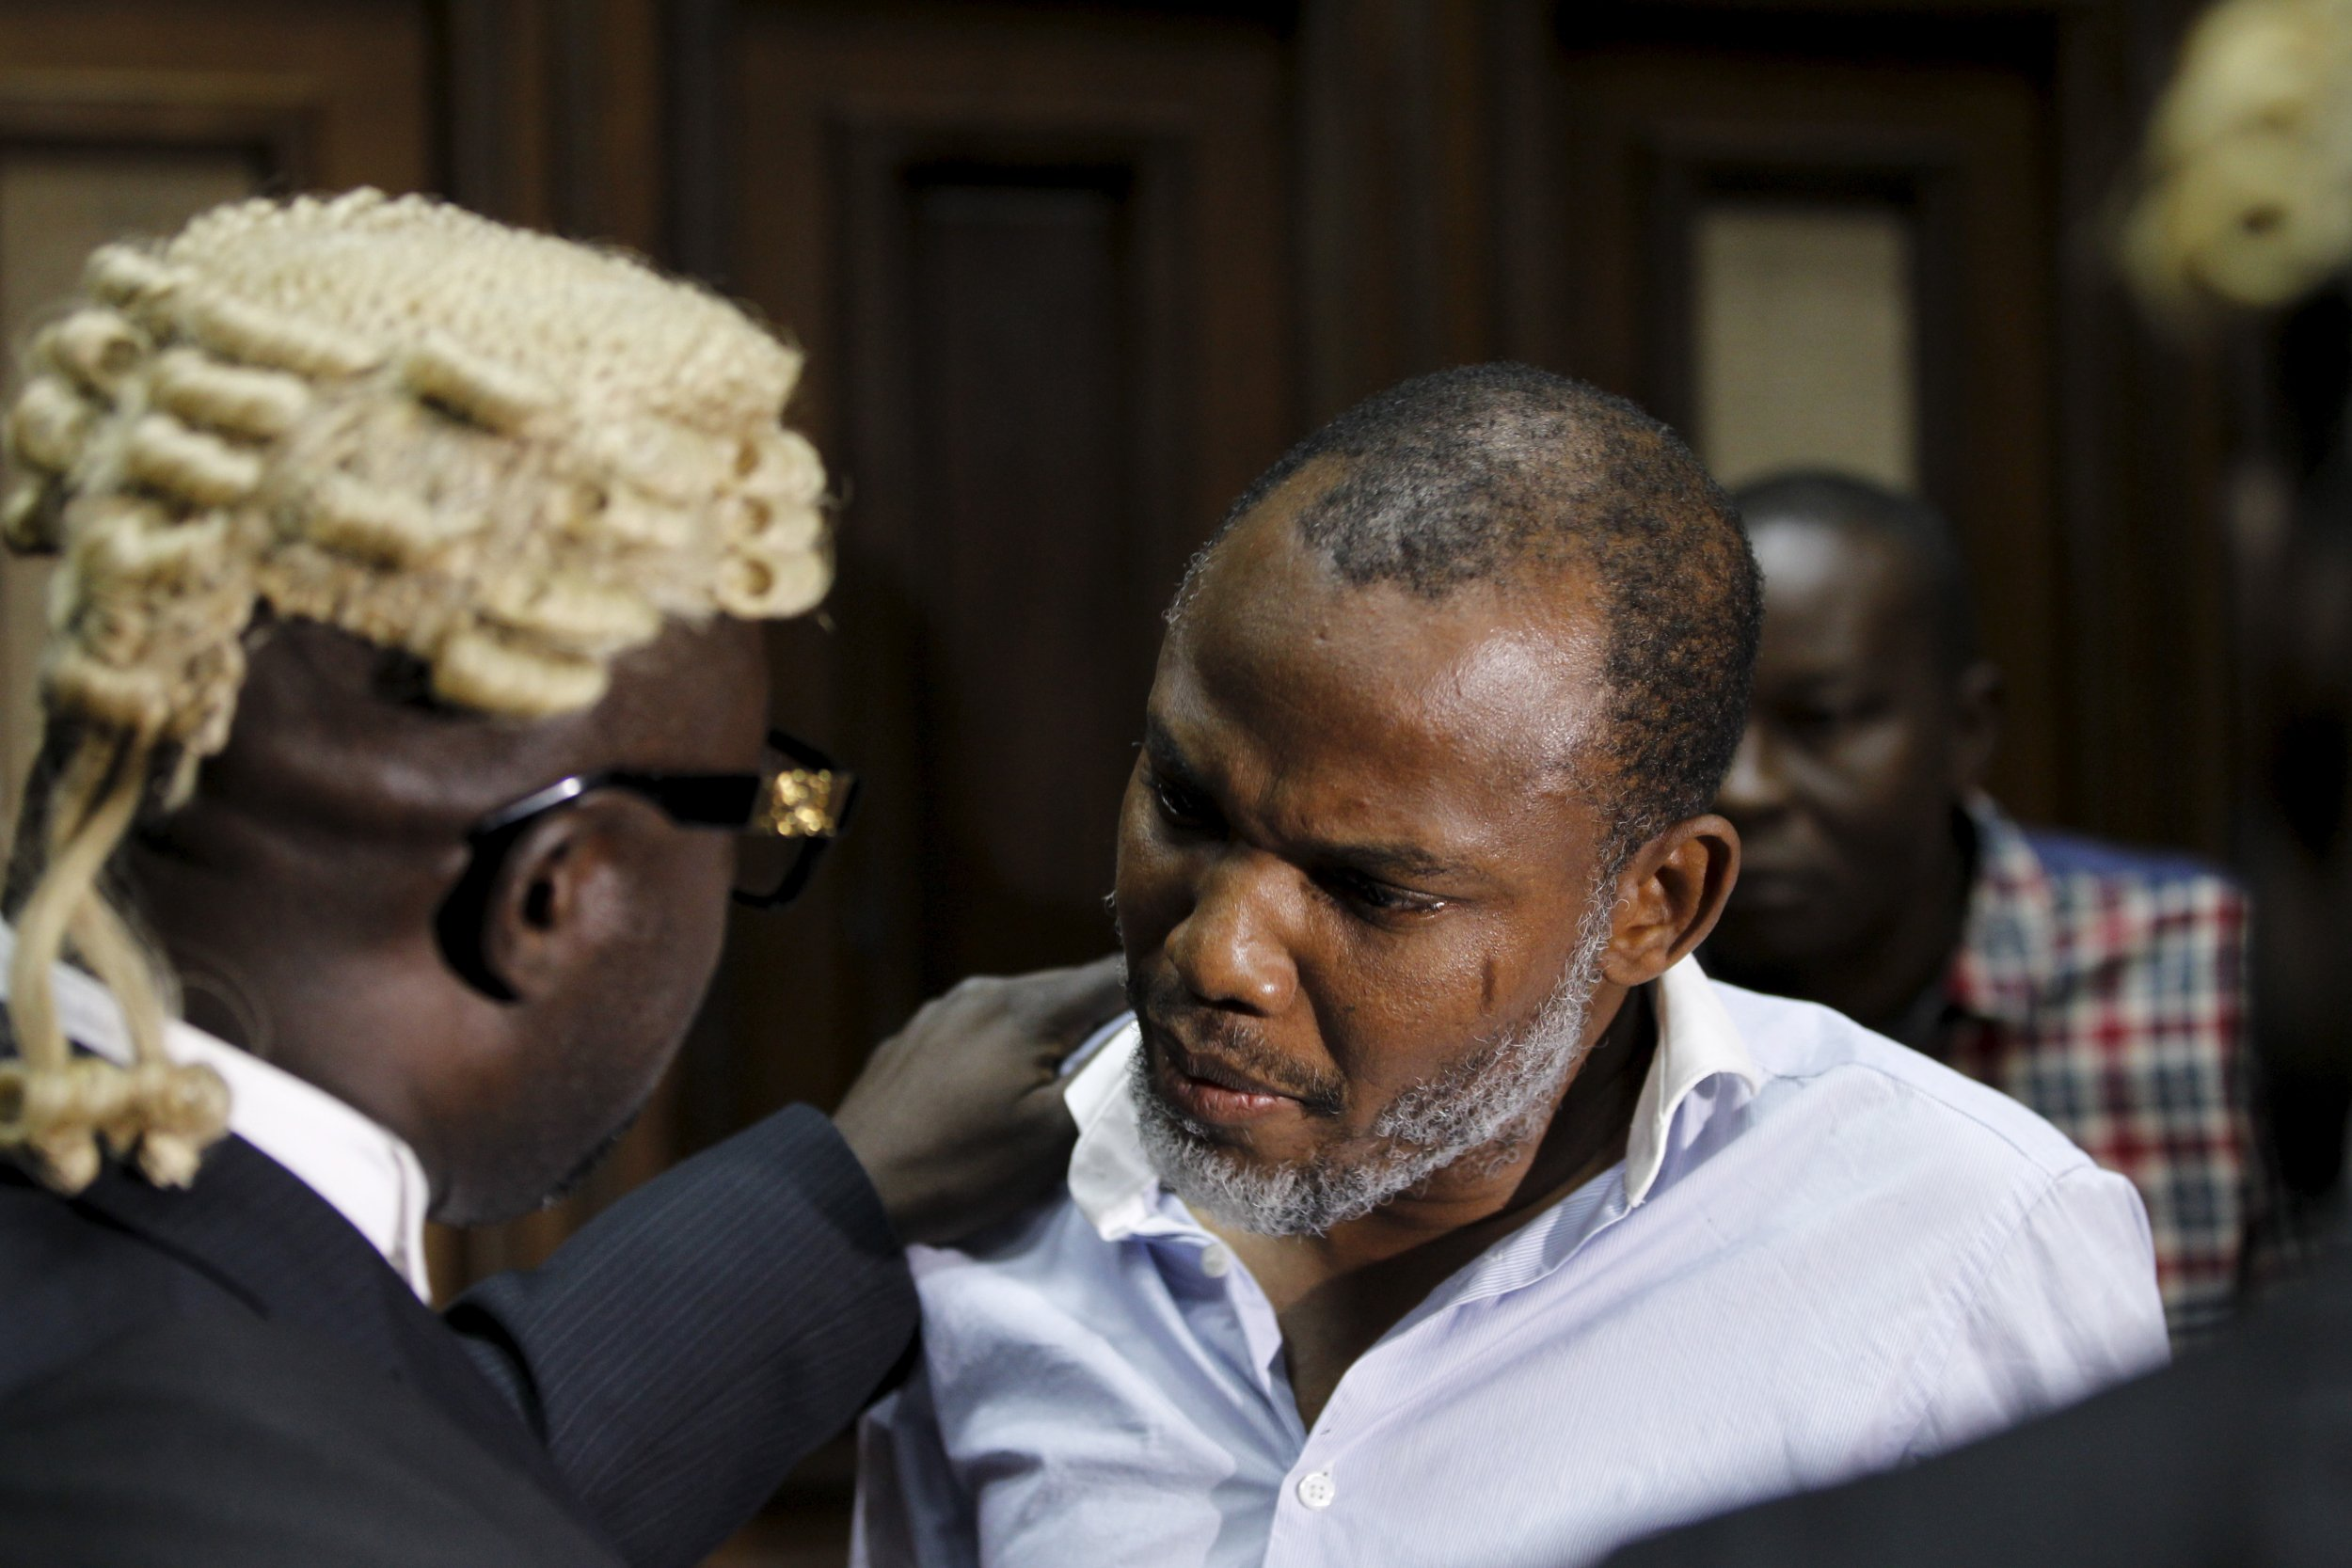 Biafran activist Nnamdi Kanu speaks to his counsel in a court in Abuja, Nigeria.